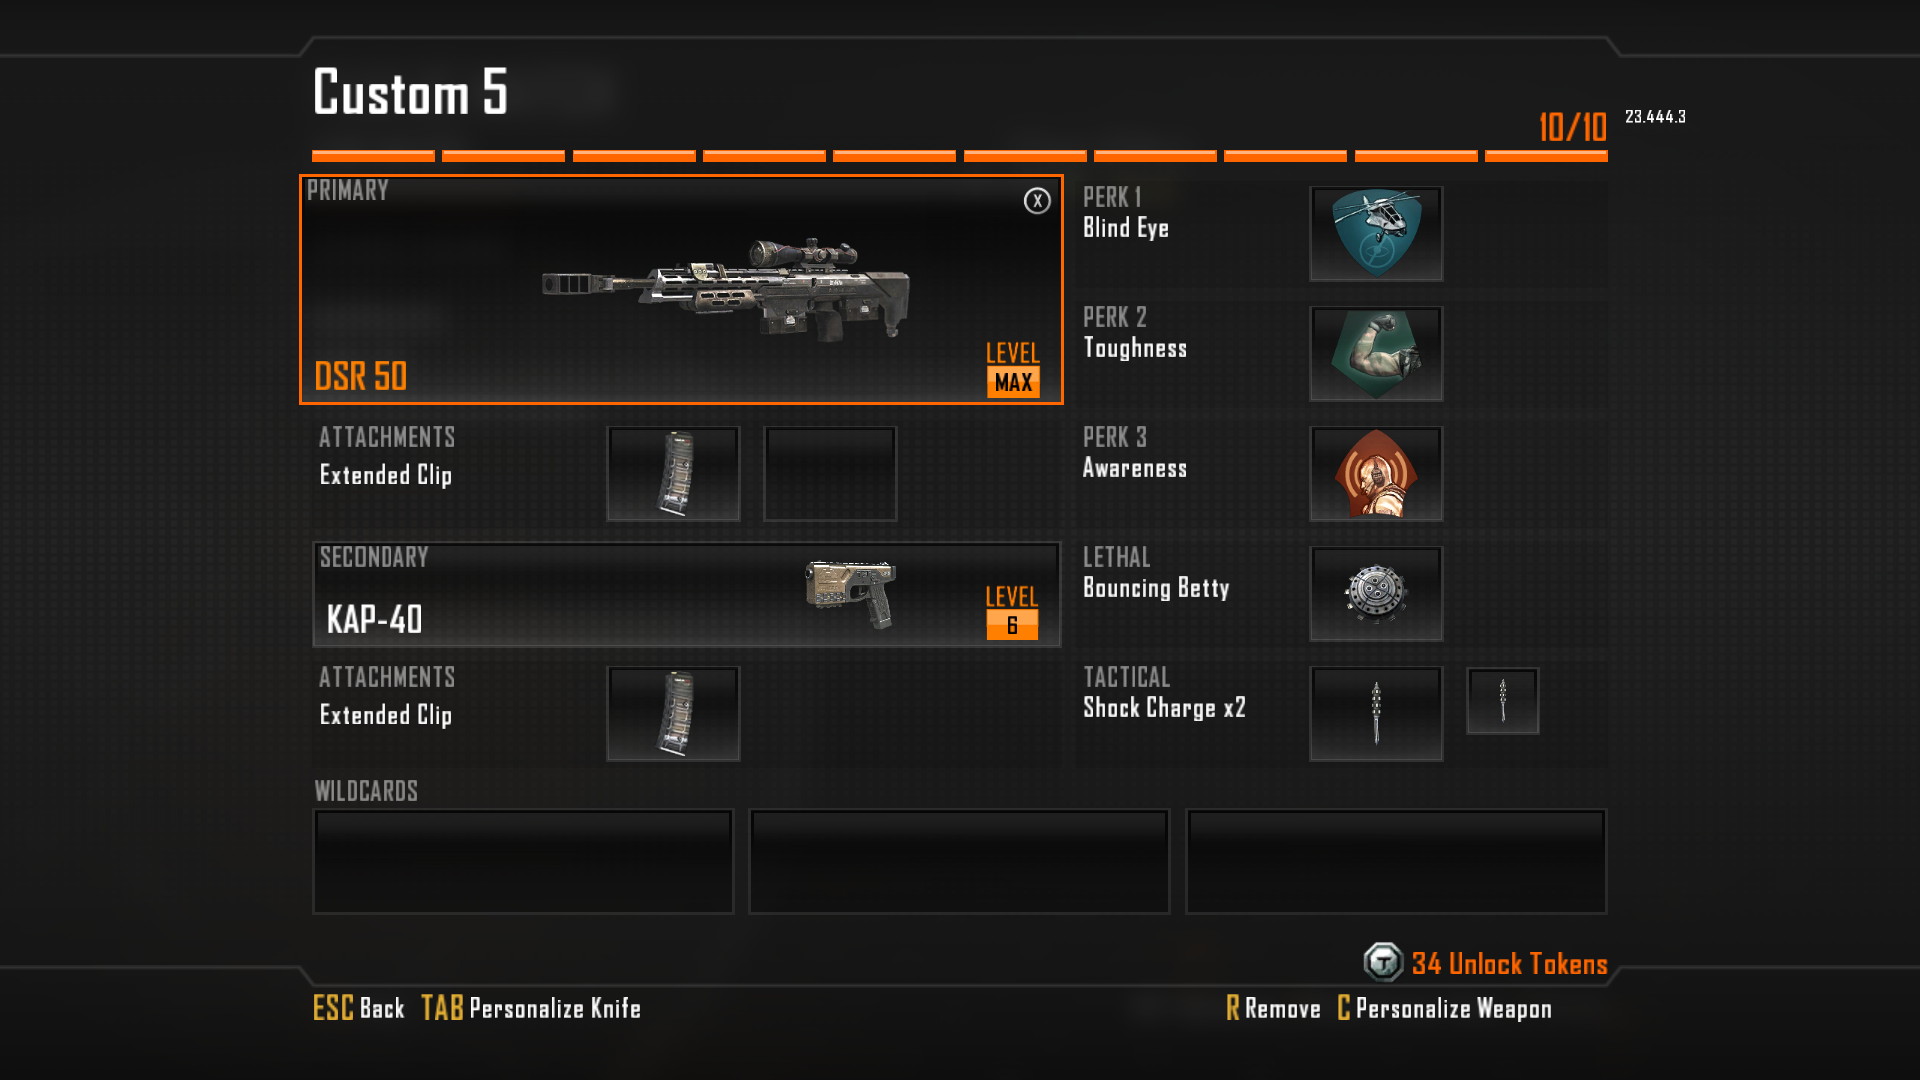 Call of Duty Black Ops 2 Weapon Guide: DSR 50 Sniper Rifle